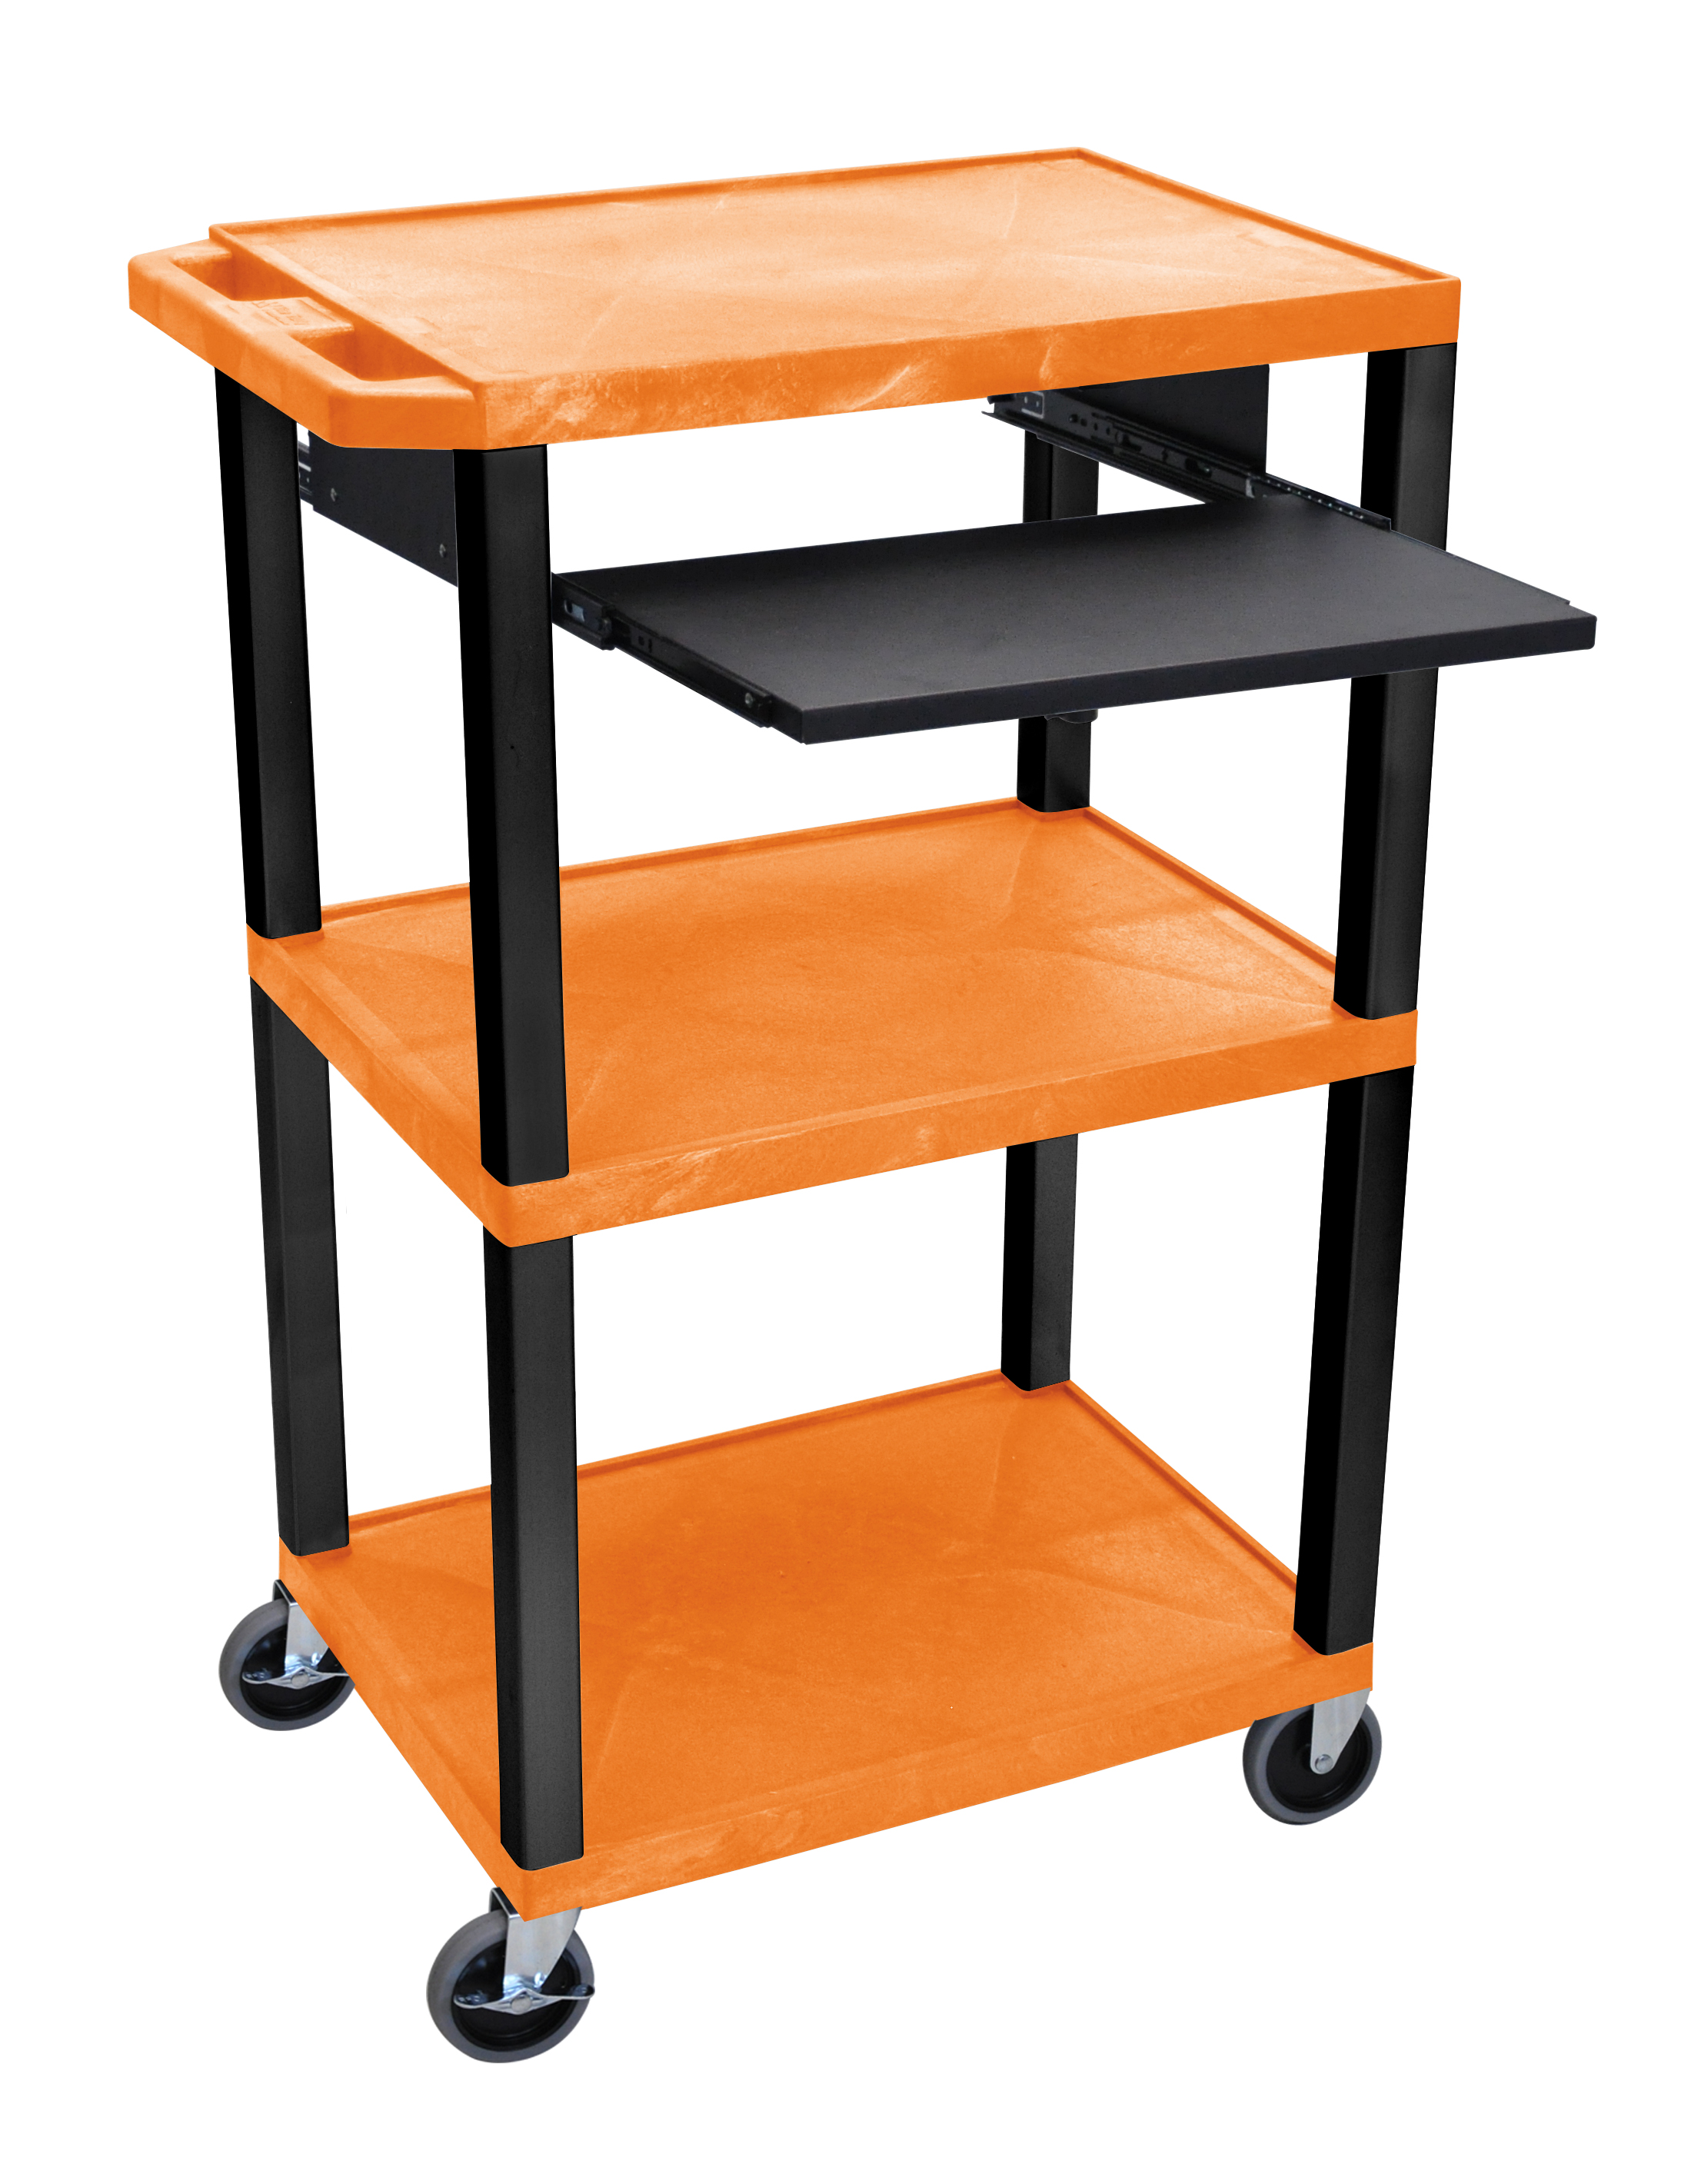 Offex Presentation Cart with Open Shelves and Pull Out Tray Orange and Black